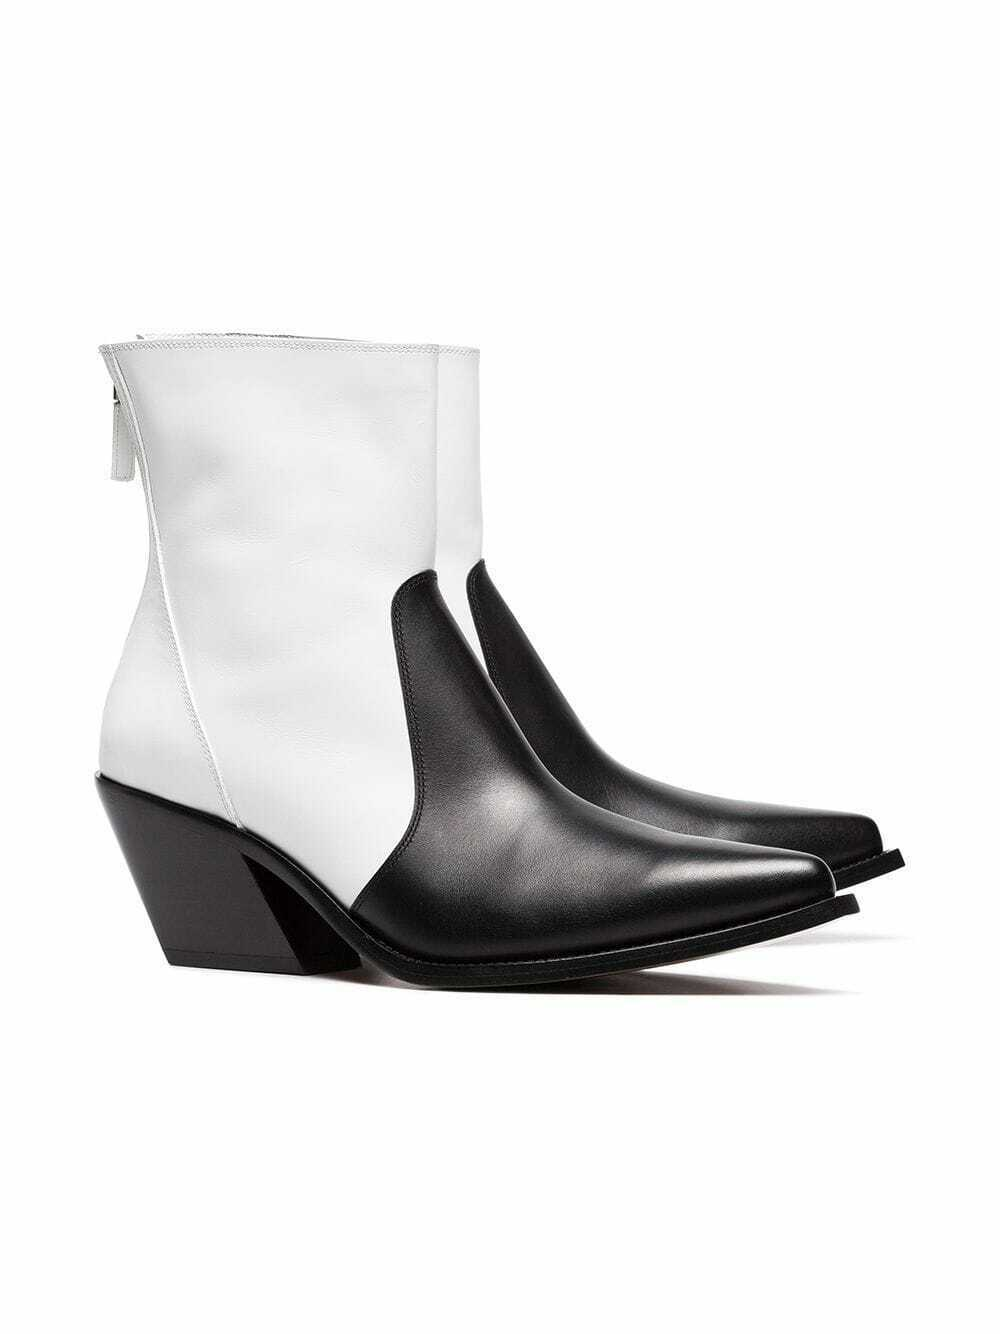 Givenchy Color Block Leather Cowboy Boots Size 36.5 MSRP: $1,295.00